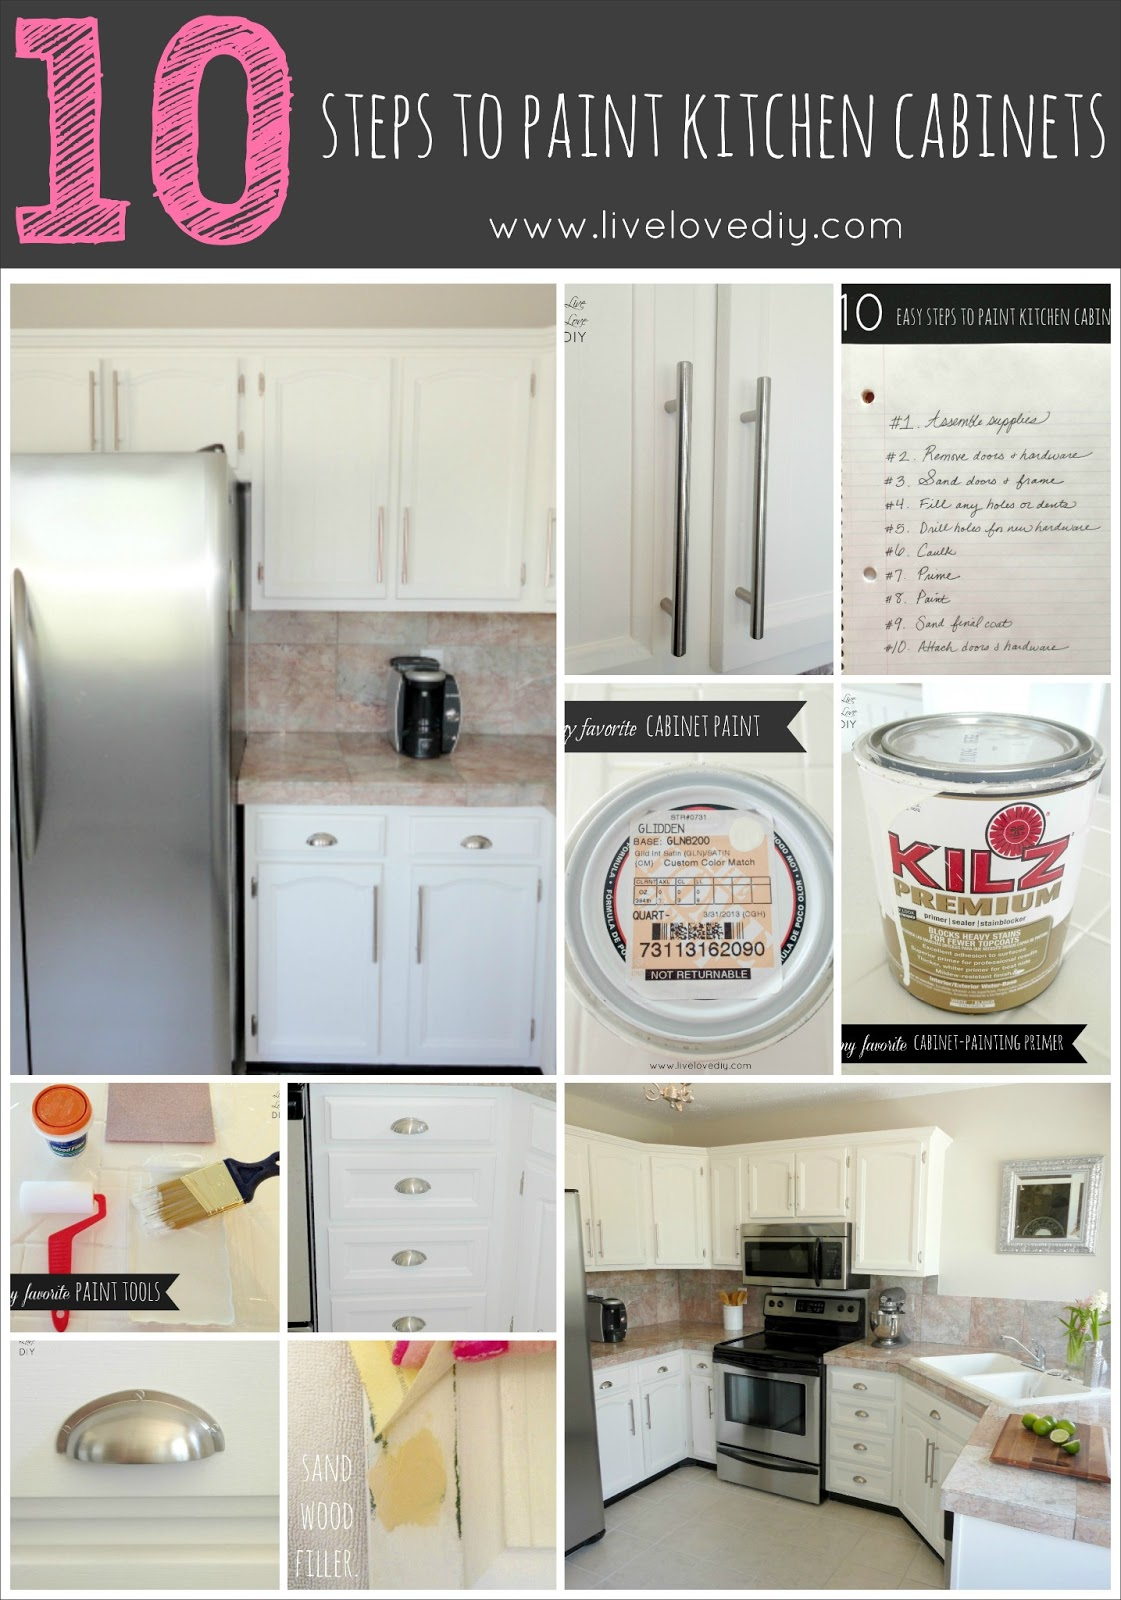 Livelovediy how to paint kitchen cabinets in 10 easy steps for Best way to paint kitchen cabinets video